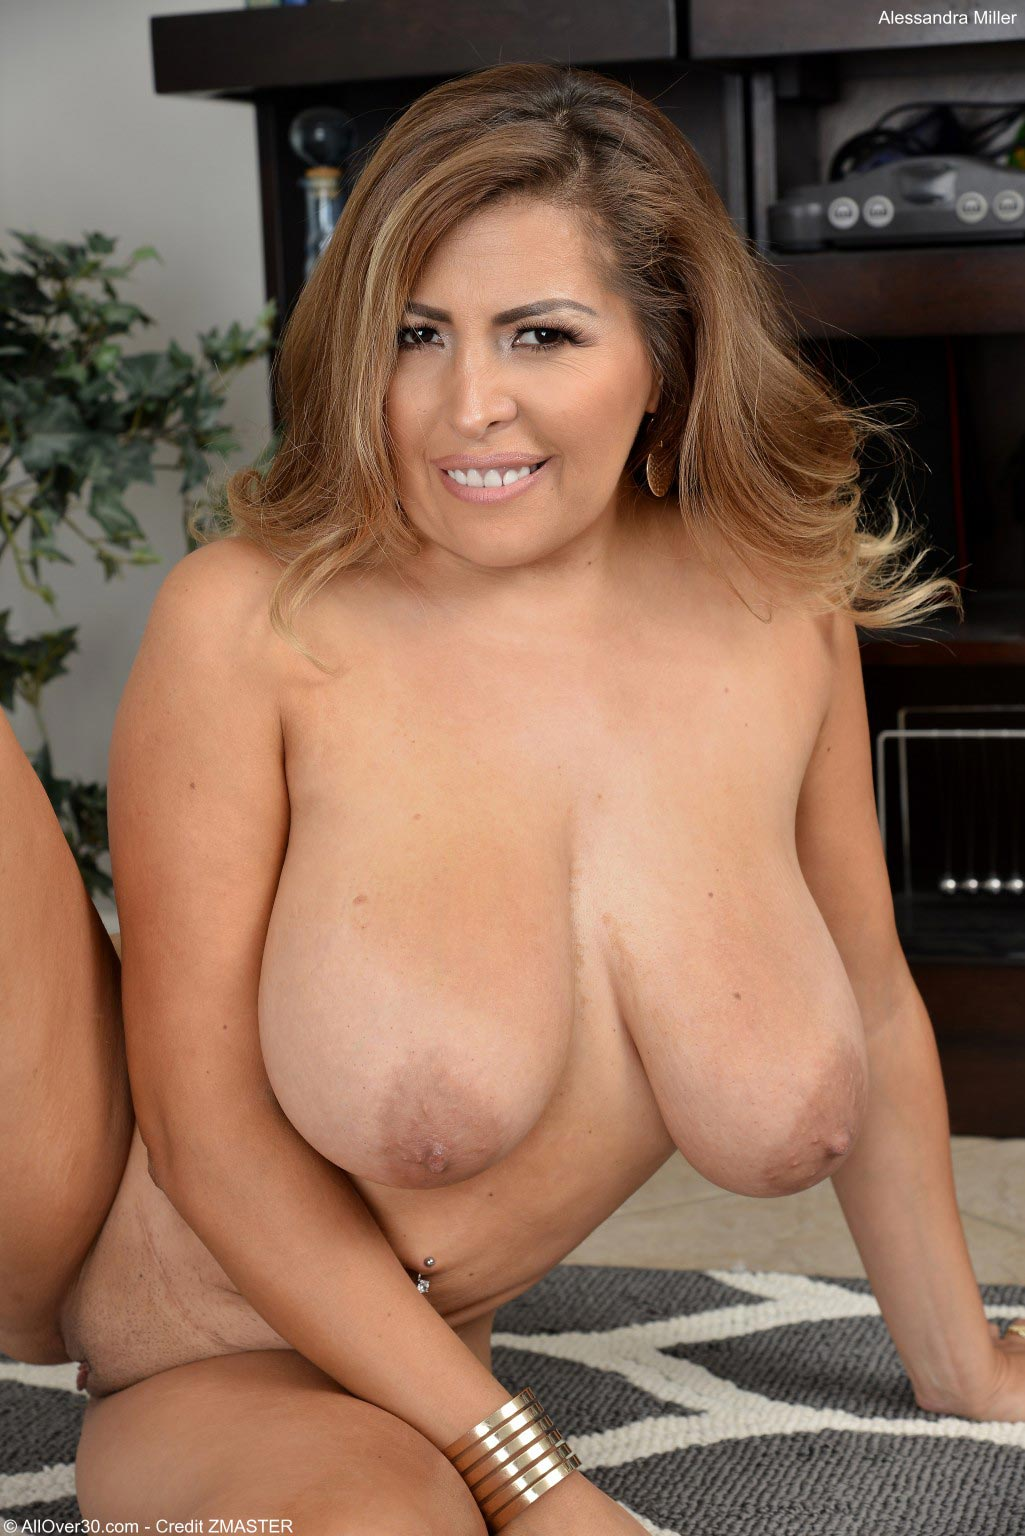 Alessandra Miller Thick Latina In A Bodysuit-8414